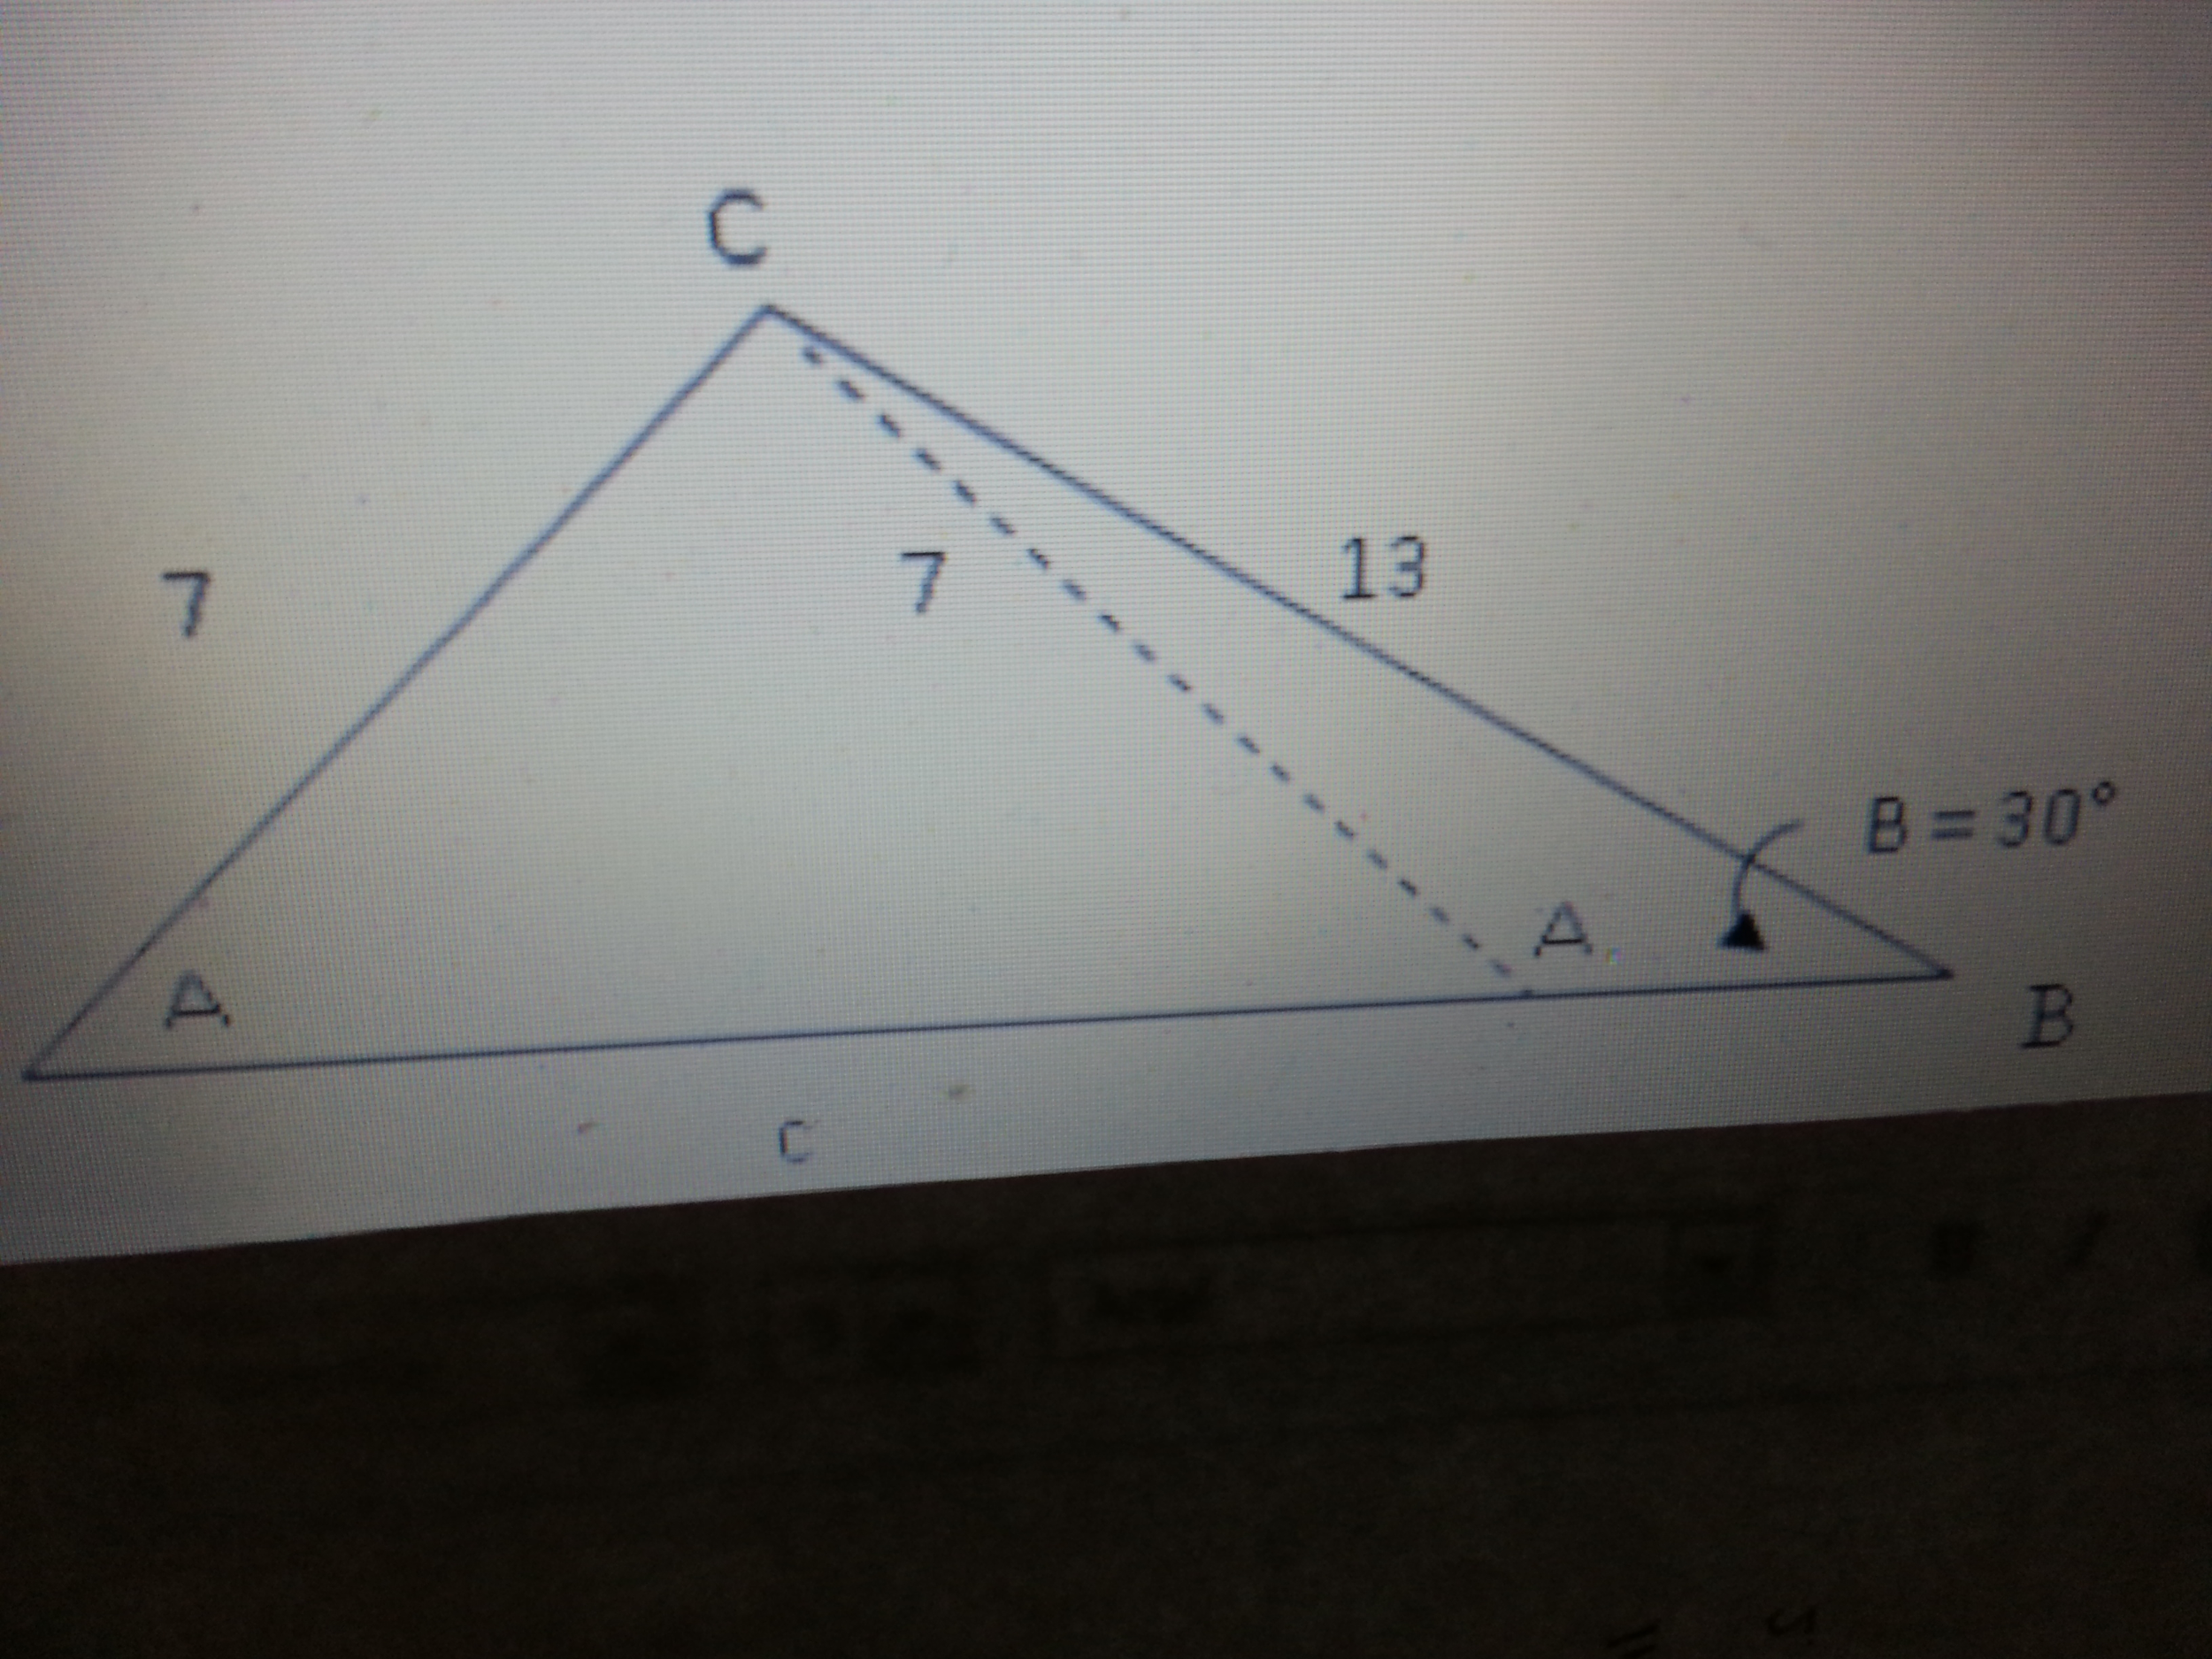 In triangle ABC, we are told that side a = 10, b =